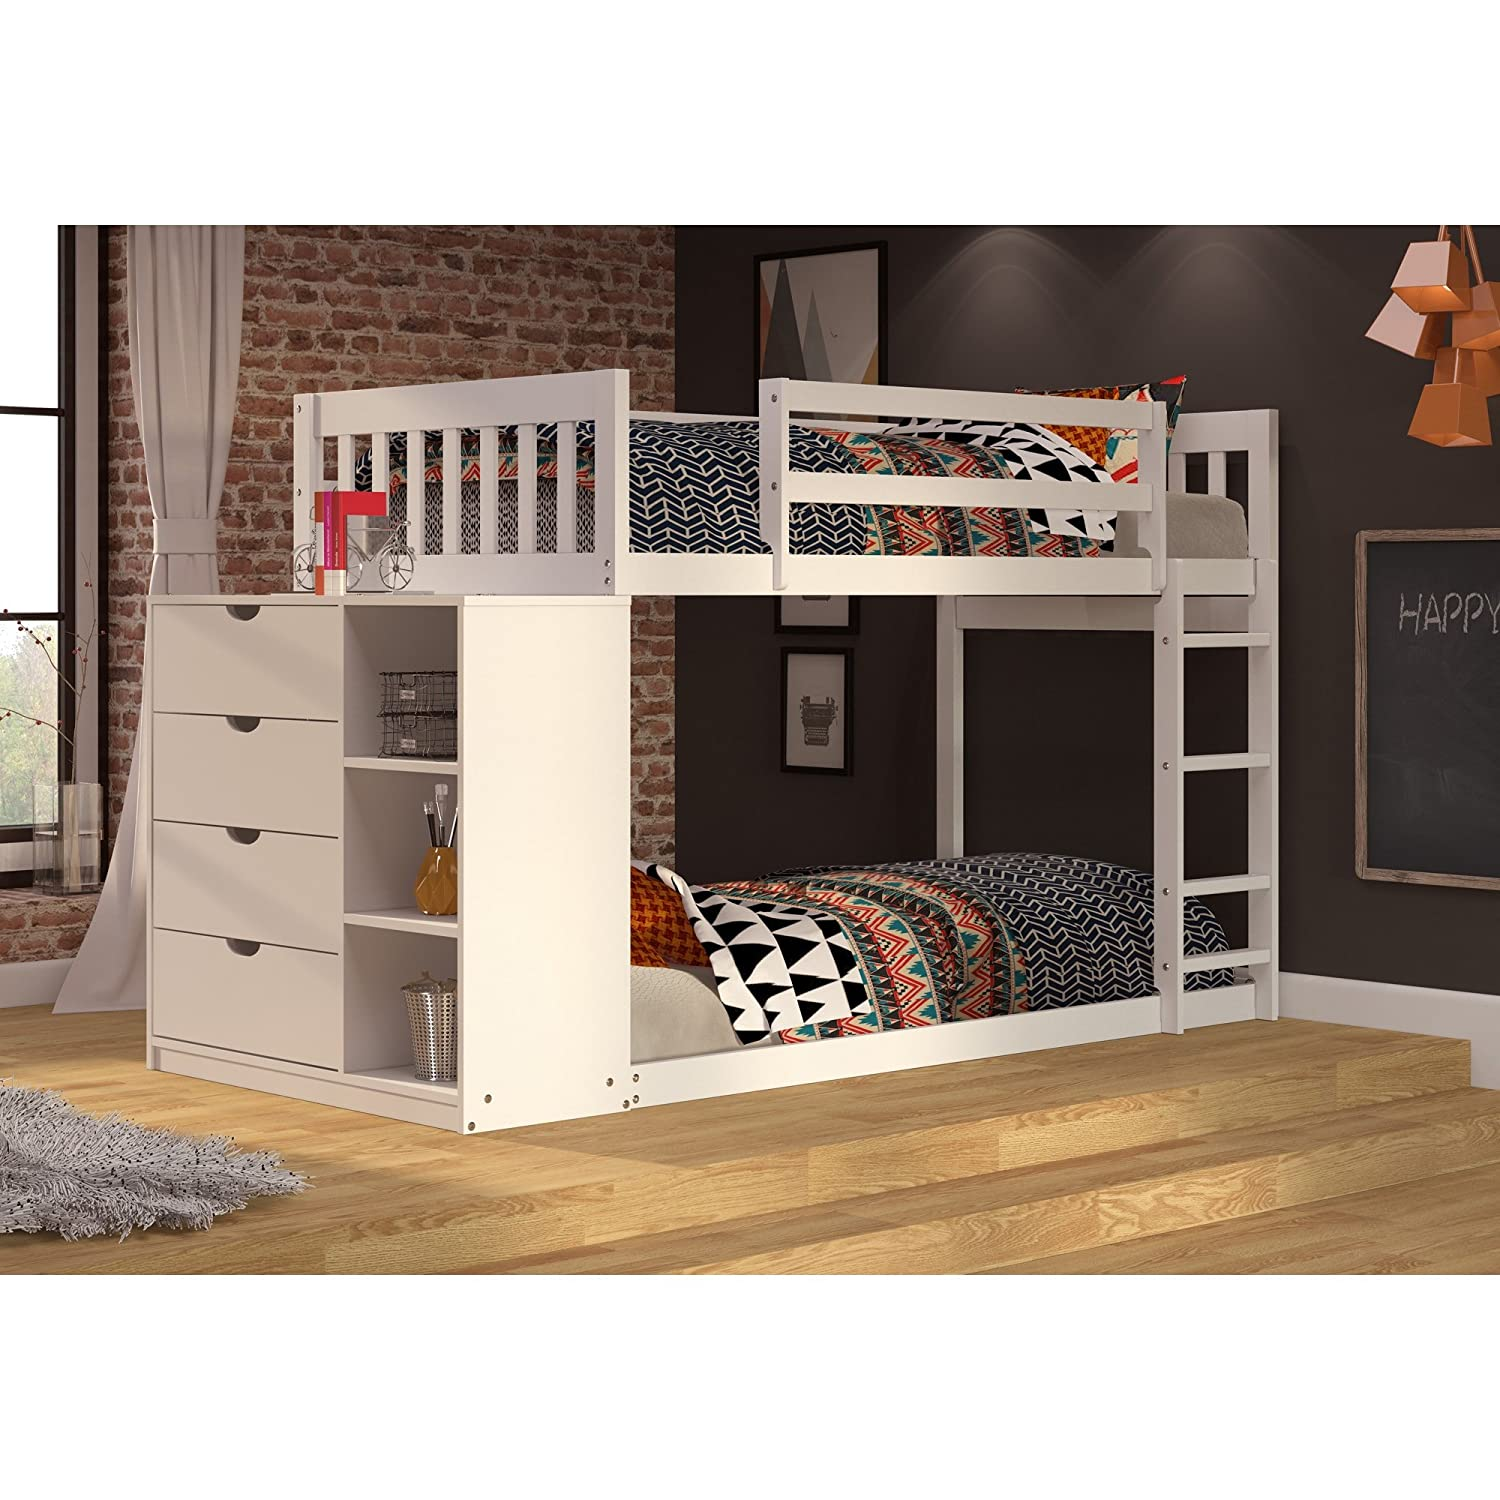 Top 7 Best Donco Kids Bunk Beds Reviews In 2019 Best7reviews